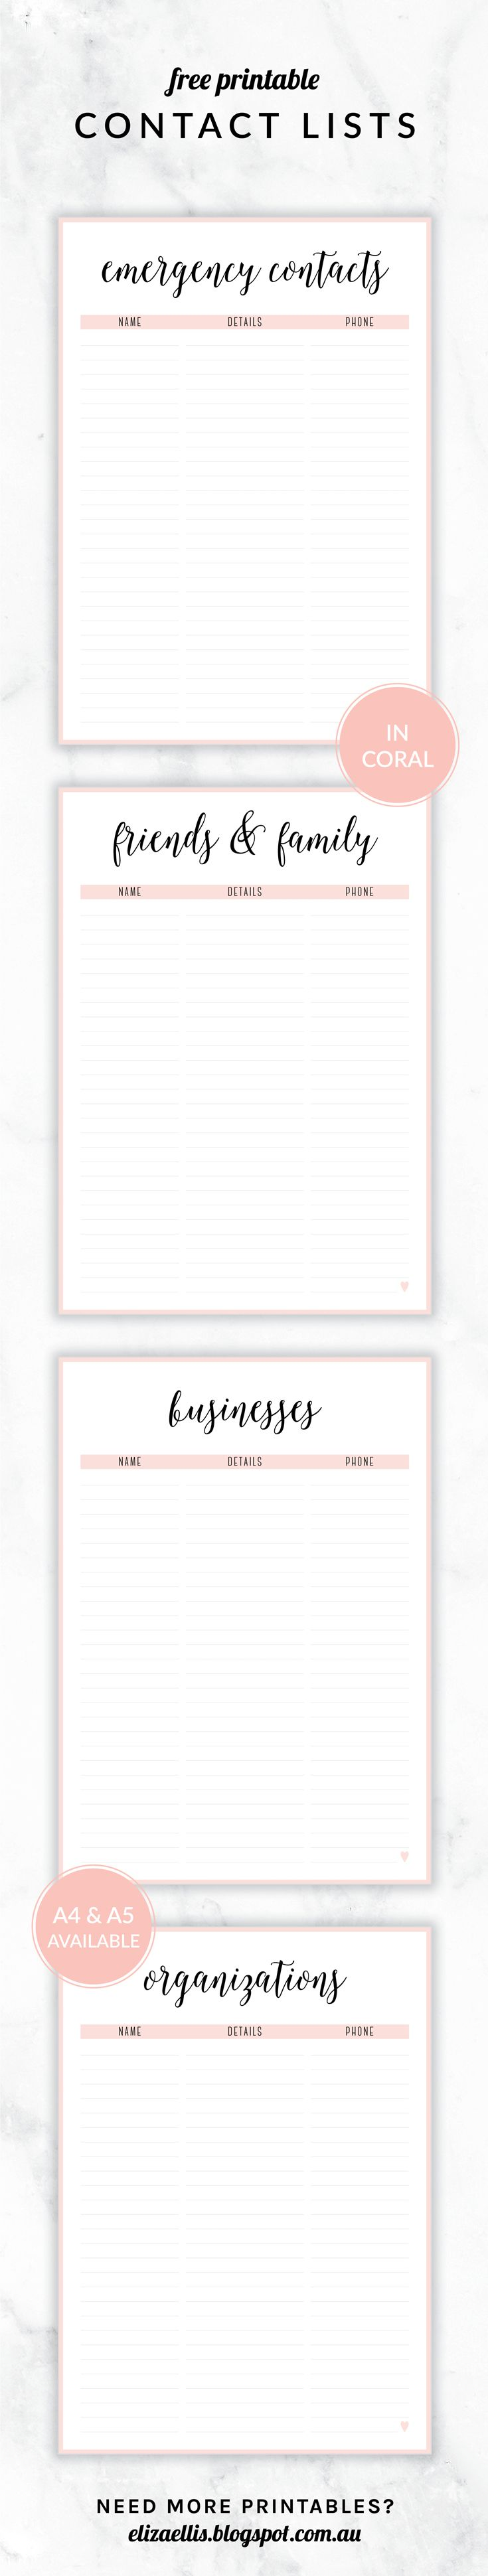 Free Printable Irma Contact Lists Eliza Ellis Including Emergency Contact List Friends And Family Businesses Planner Printables Free Free Printables Free